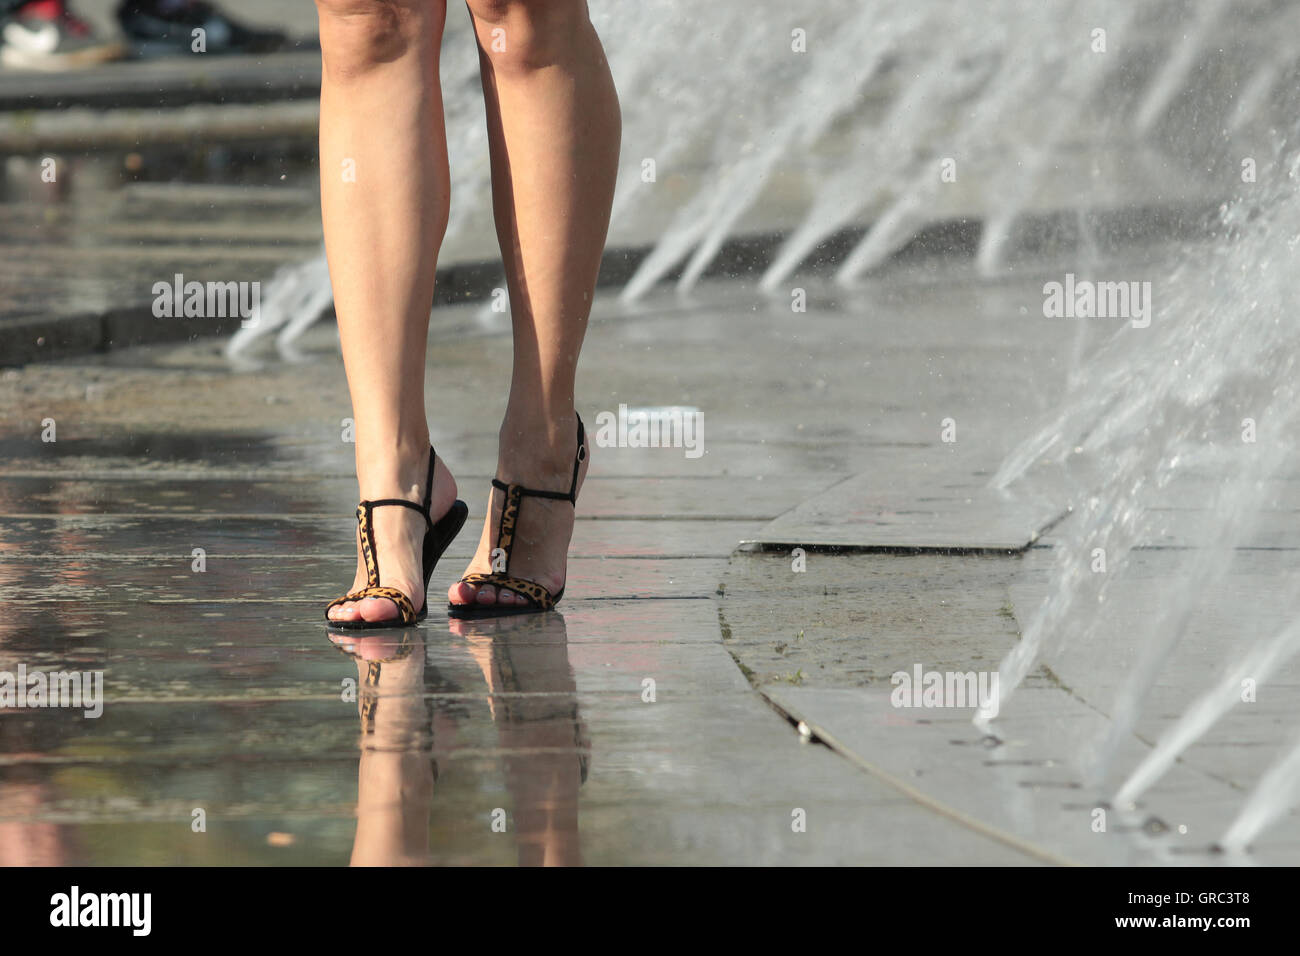 Woman S Legs In A Fountaun During Heat Wave - Stock Image